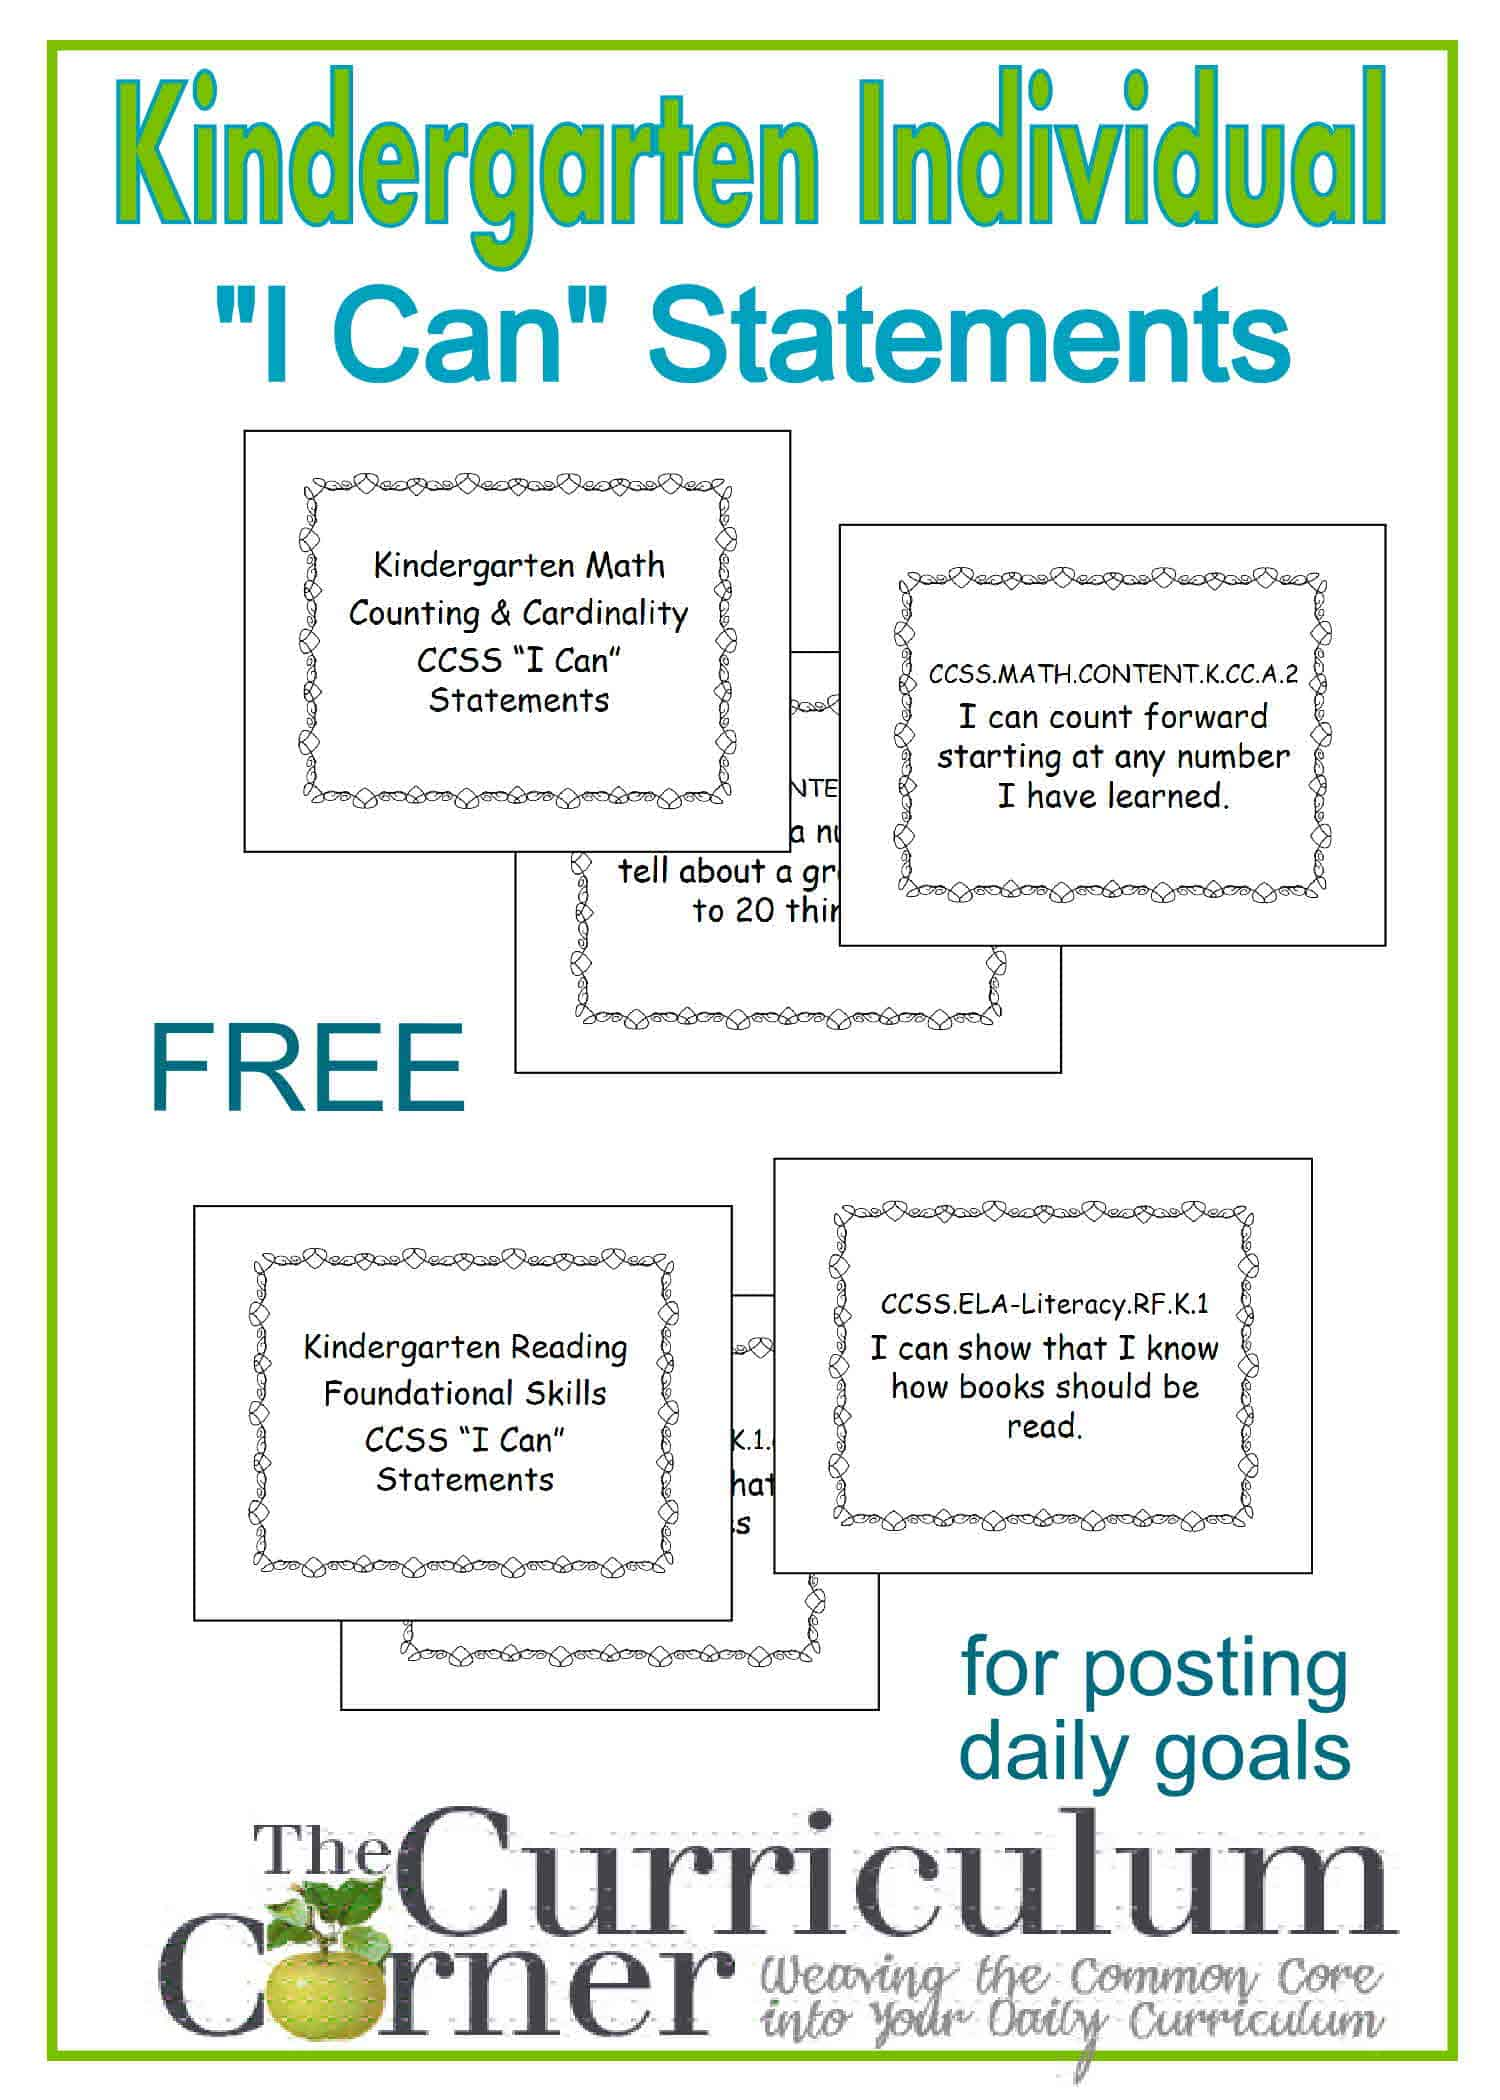 Kindergarten Individual I Can Statement Posters